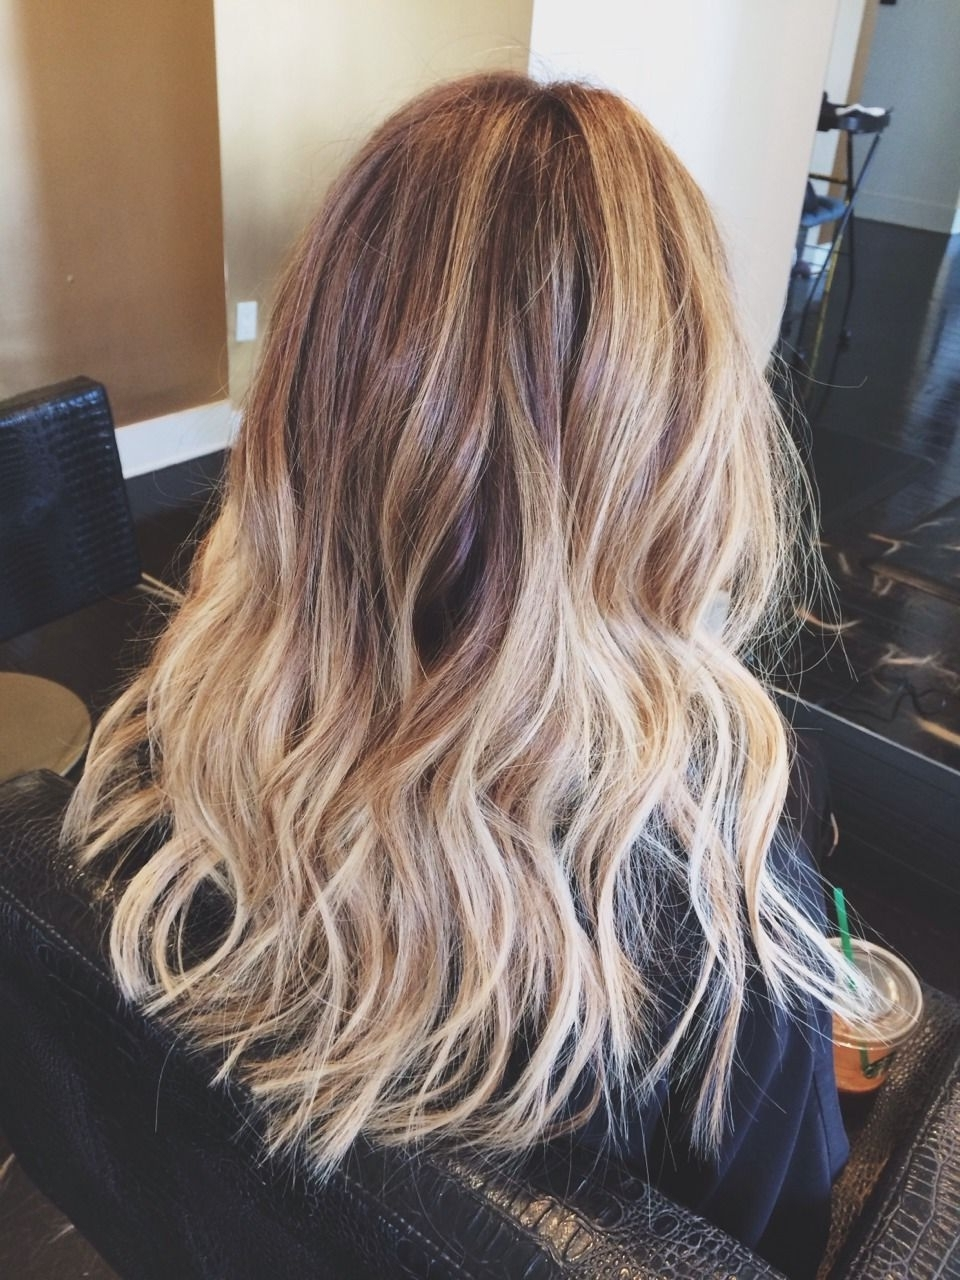 Fashionable Blonde Ombre Waves Hairstyles Regarding My Blonde/light Brown Ombré Hair With Beach Waves (View 8 of 20)